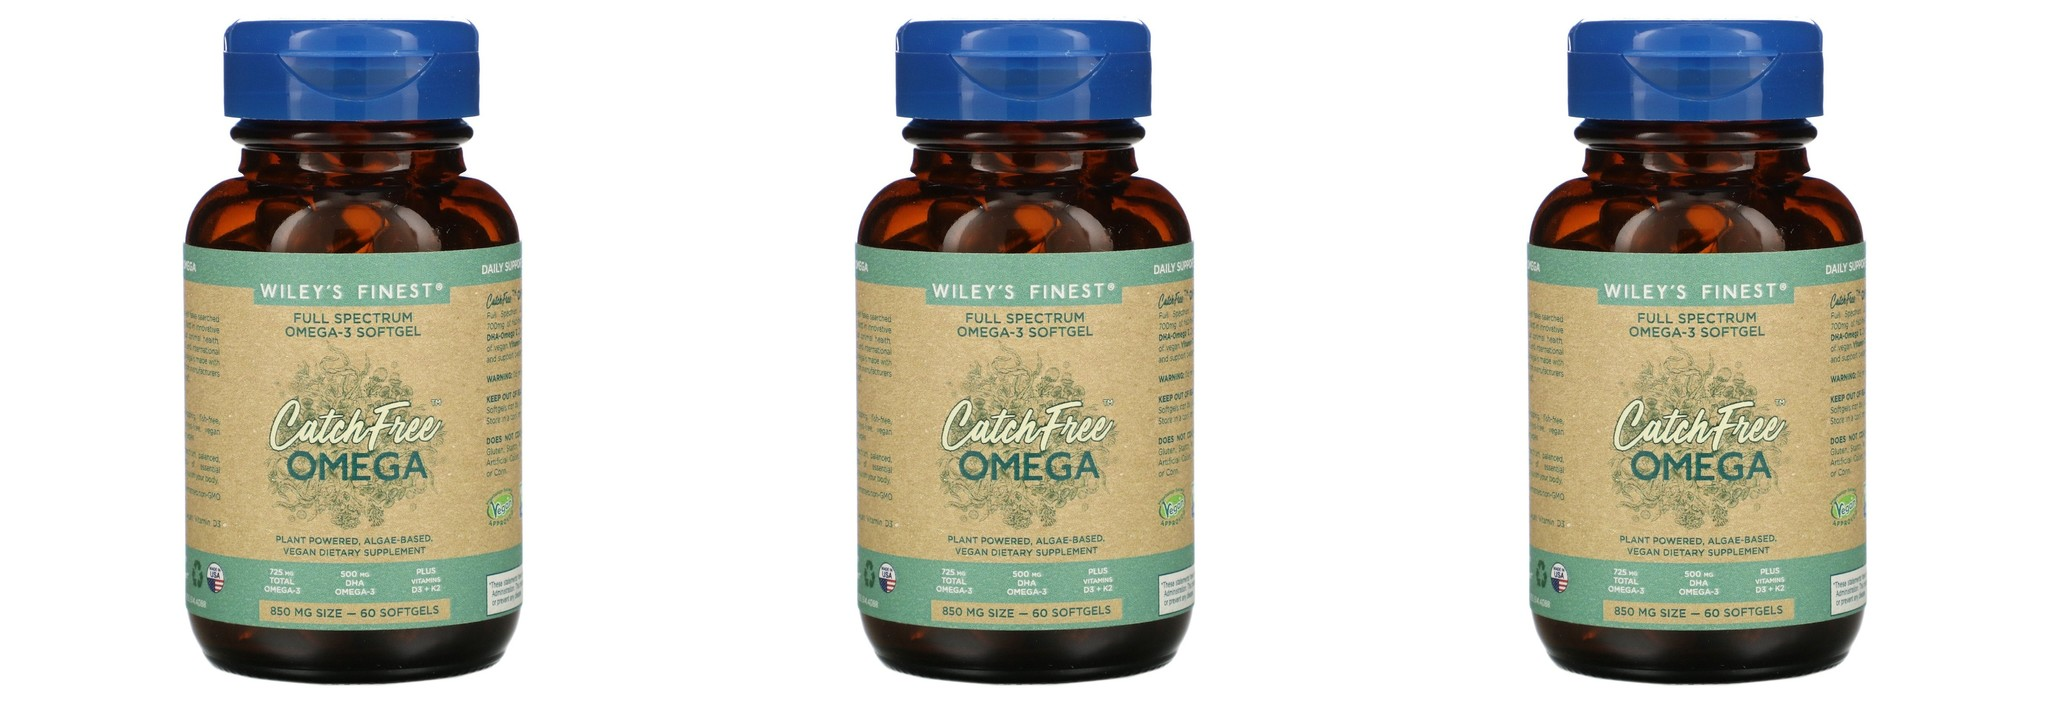 Wiley's Finest CatchFree Omega, 60 Softgels, 3-packs